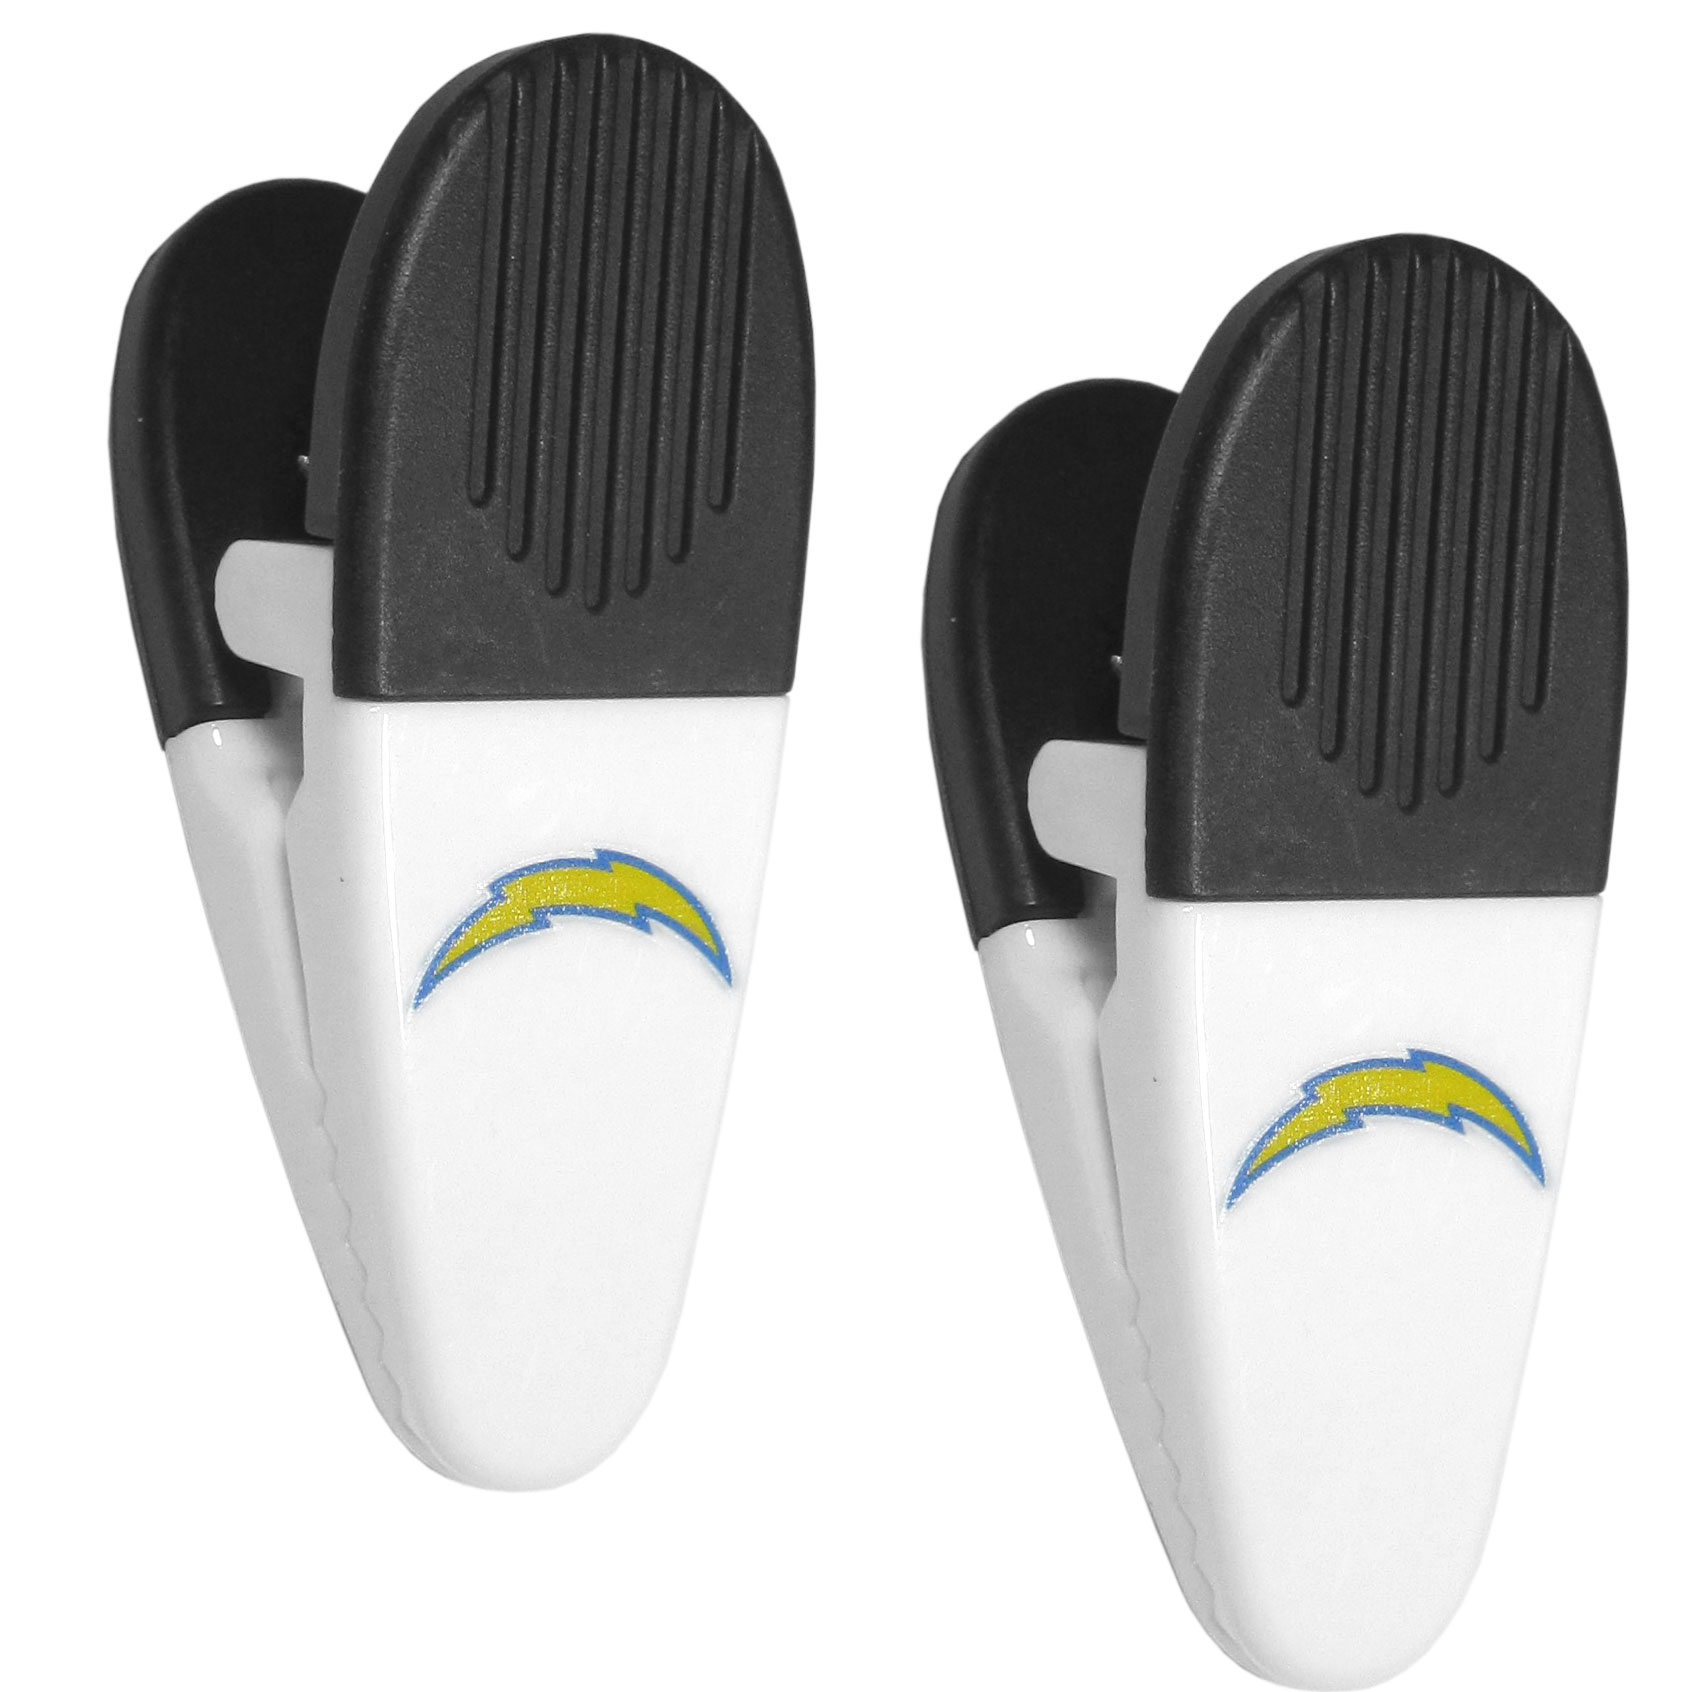 Los Angeles Chargers Mini Chip Clip Magnets, 2 pk - Our Los Angeles Chargers chip clip magnets feature a crisp team logo on the front of the clip. The clip is perfect for sealing chips for freshness and with the powerful magnet on the back it can be used to attach notes to the fridge or hanging your child's artwork. Set of 2 magnet clips, each clip is 3.5 inches tall and 1.25 inch wide.